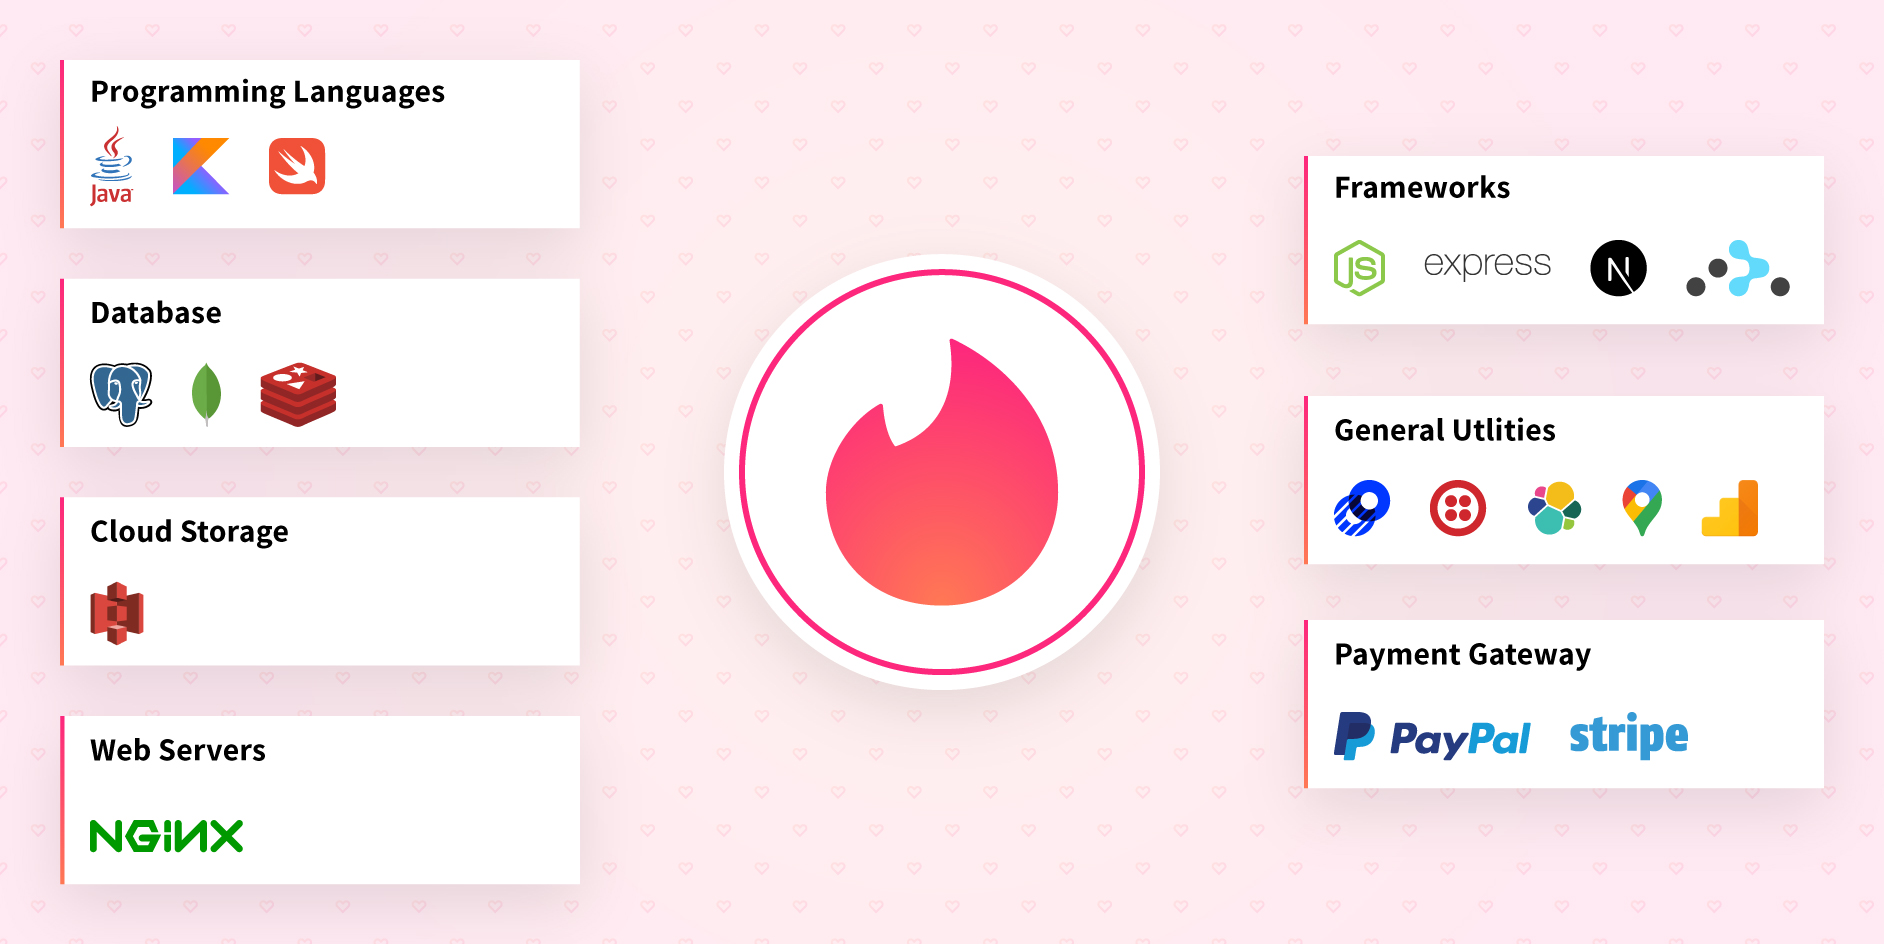 How to Create a Dating App like Tinder: Step-by-Step Guide